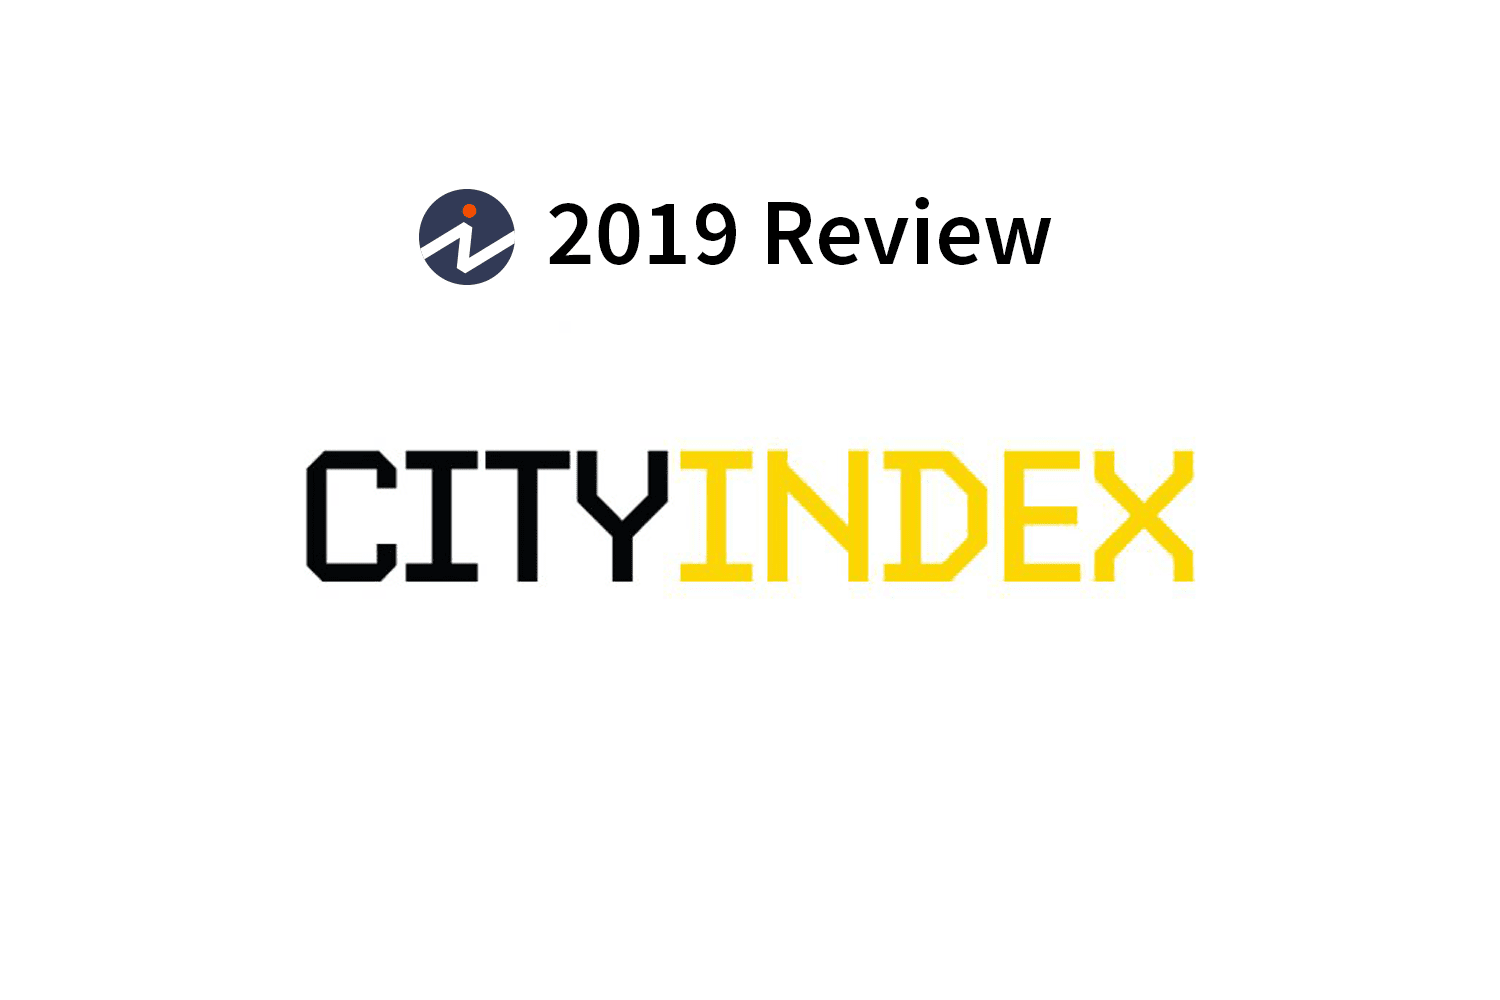 City Index Review 2019